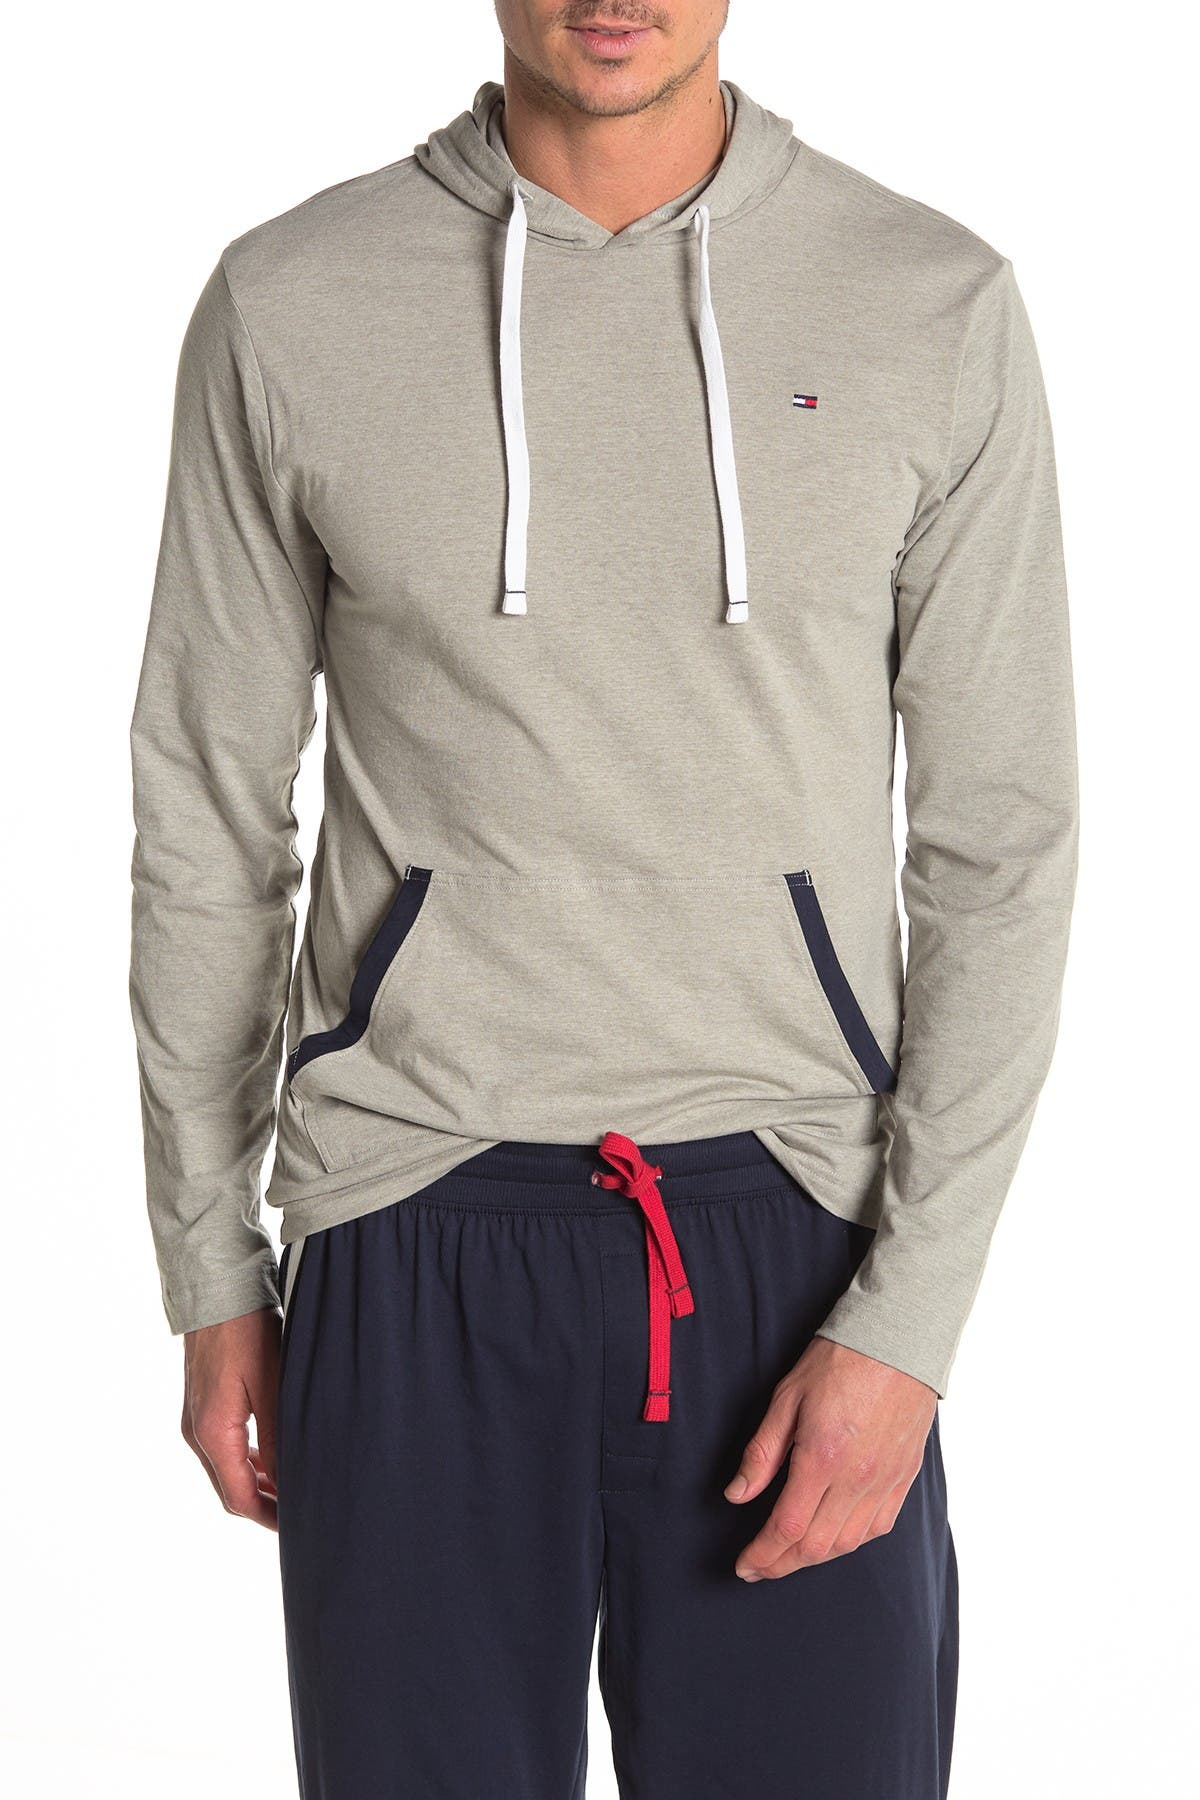 Image of Tommy Hilfiger Pullover Drawstring Lounge Hoodie